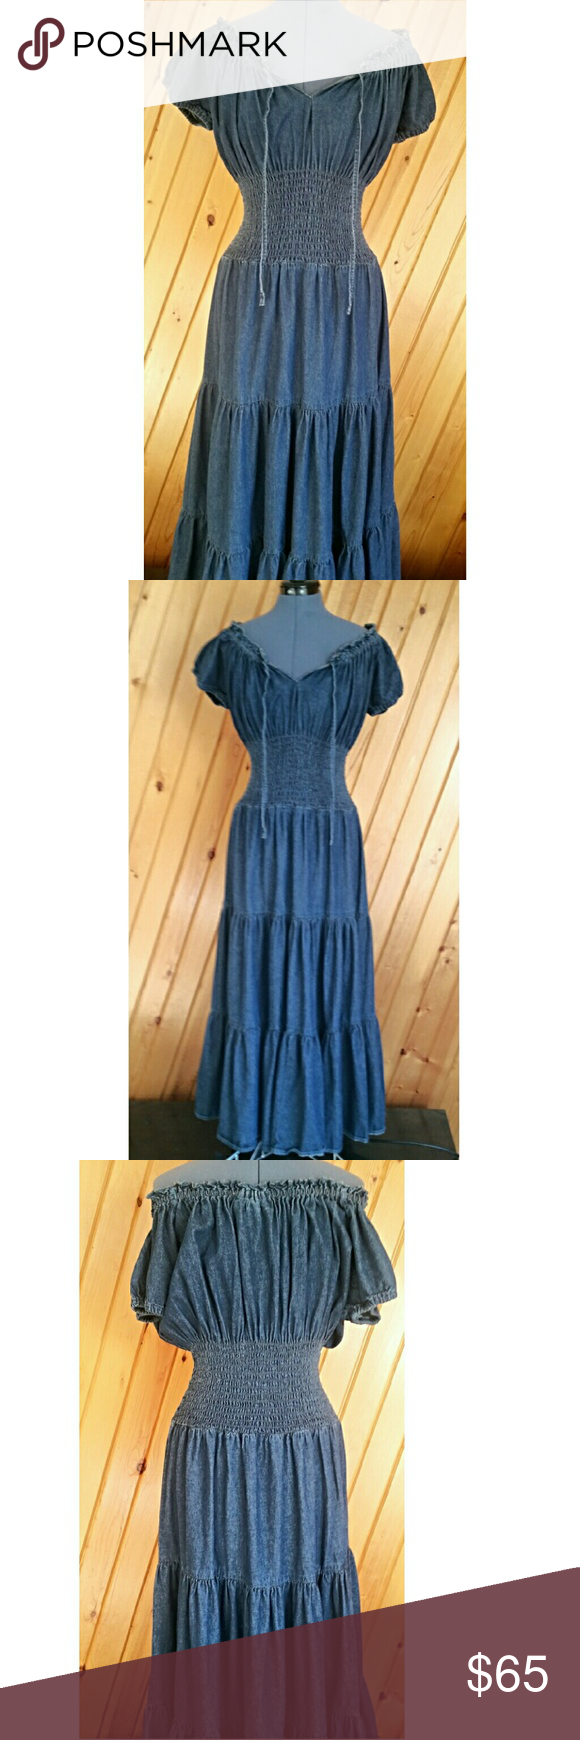 Denim Peasant Dress by Jeanology (Newport News) Flirty and